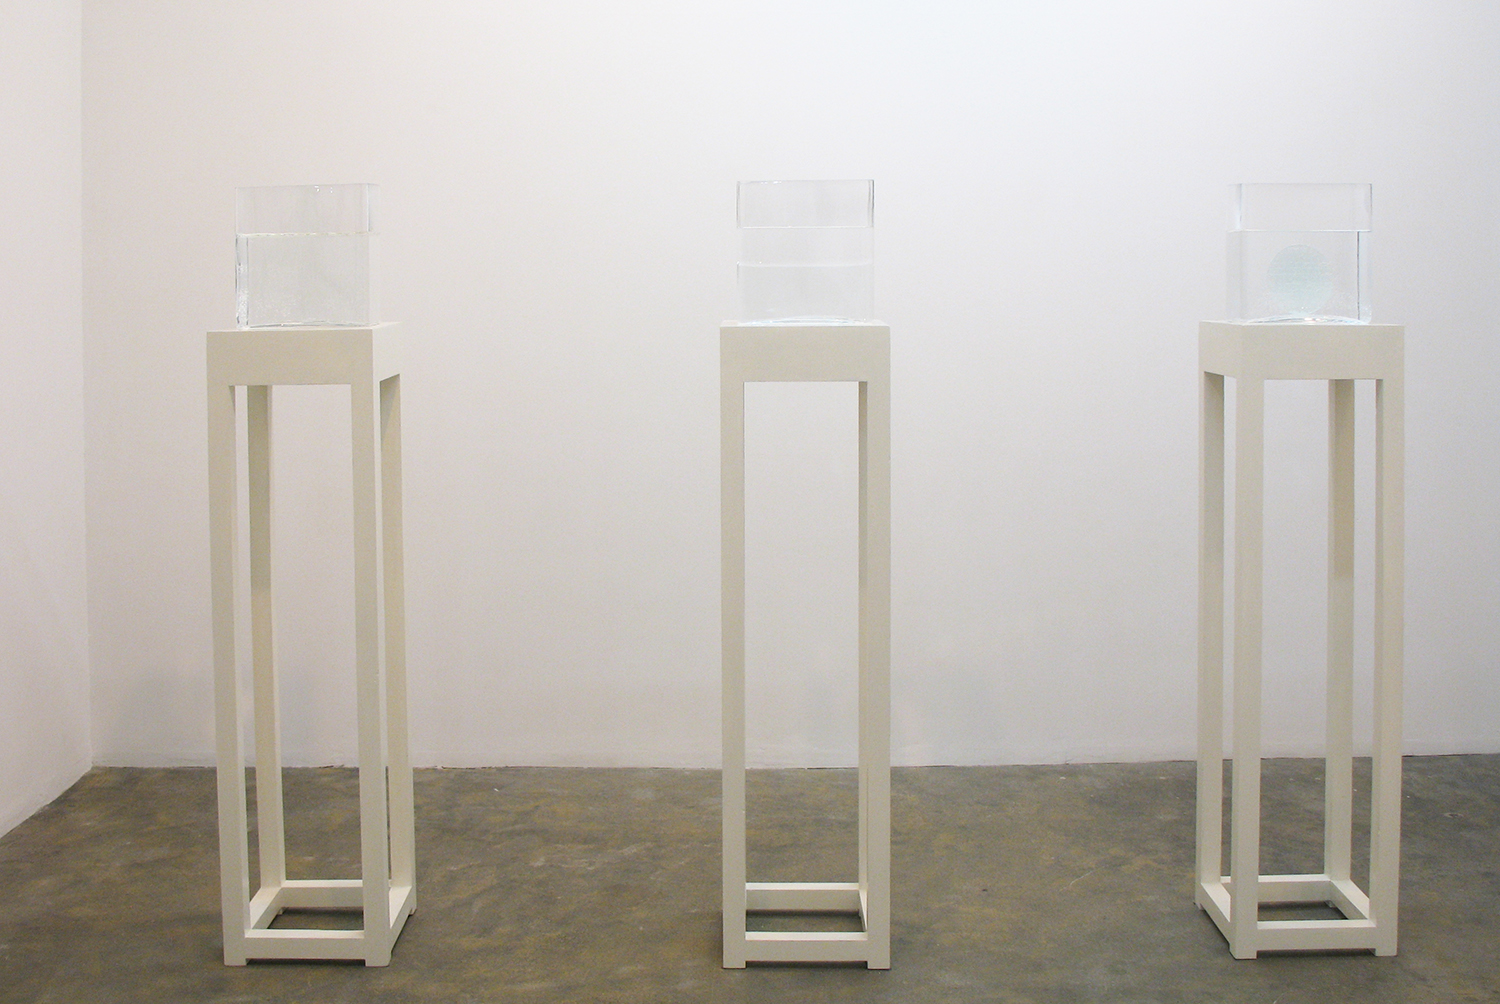 installation view :境界シリーズ|border series